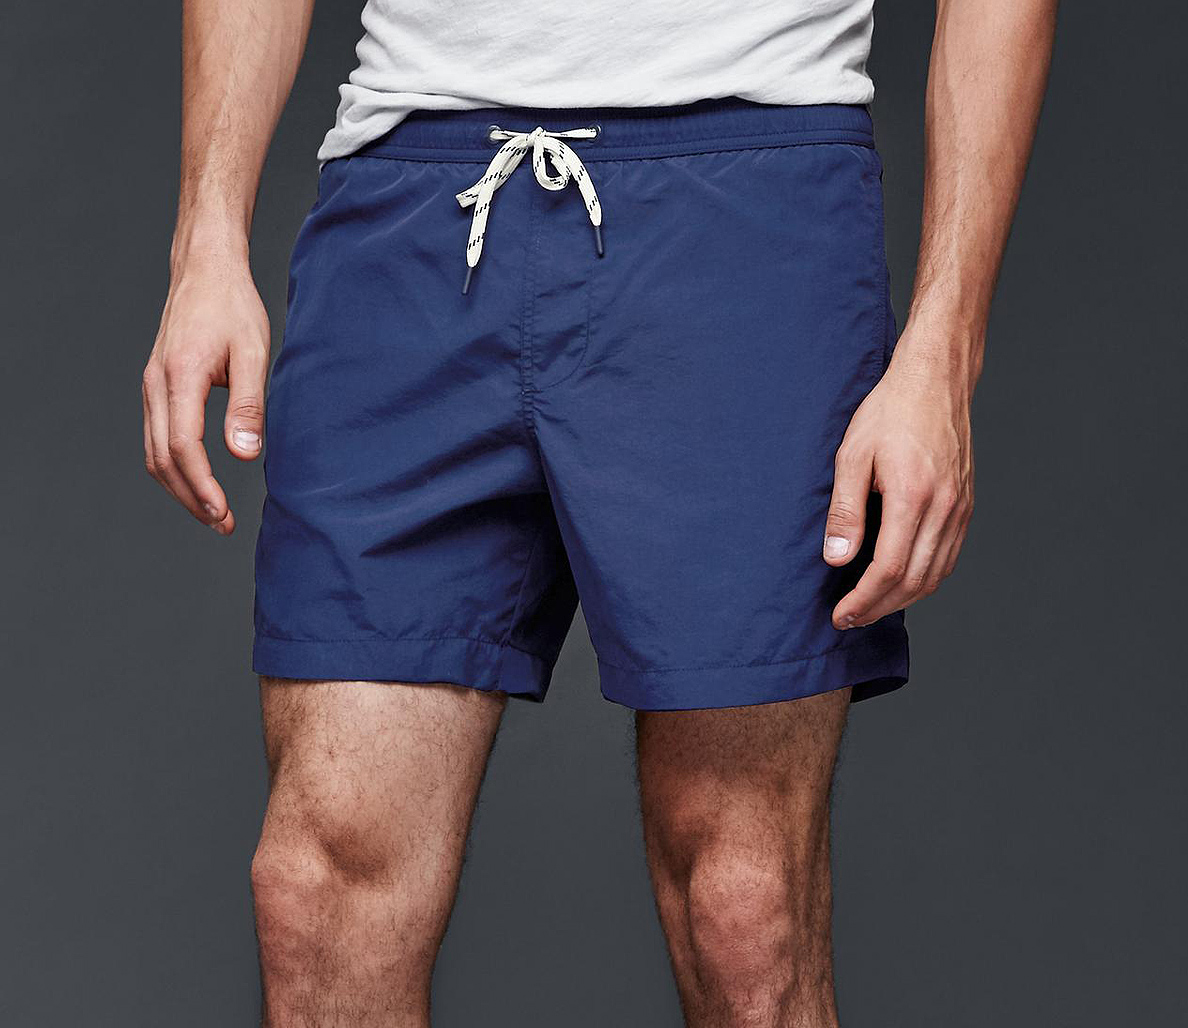 87c18a6f44340 20 Cheap Swim Trunks and Board Shorts for Men: Summer 2016 Edition.